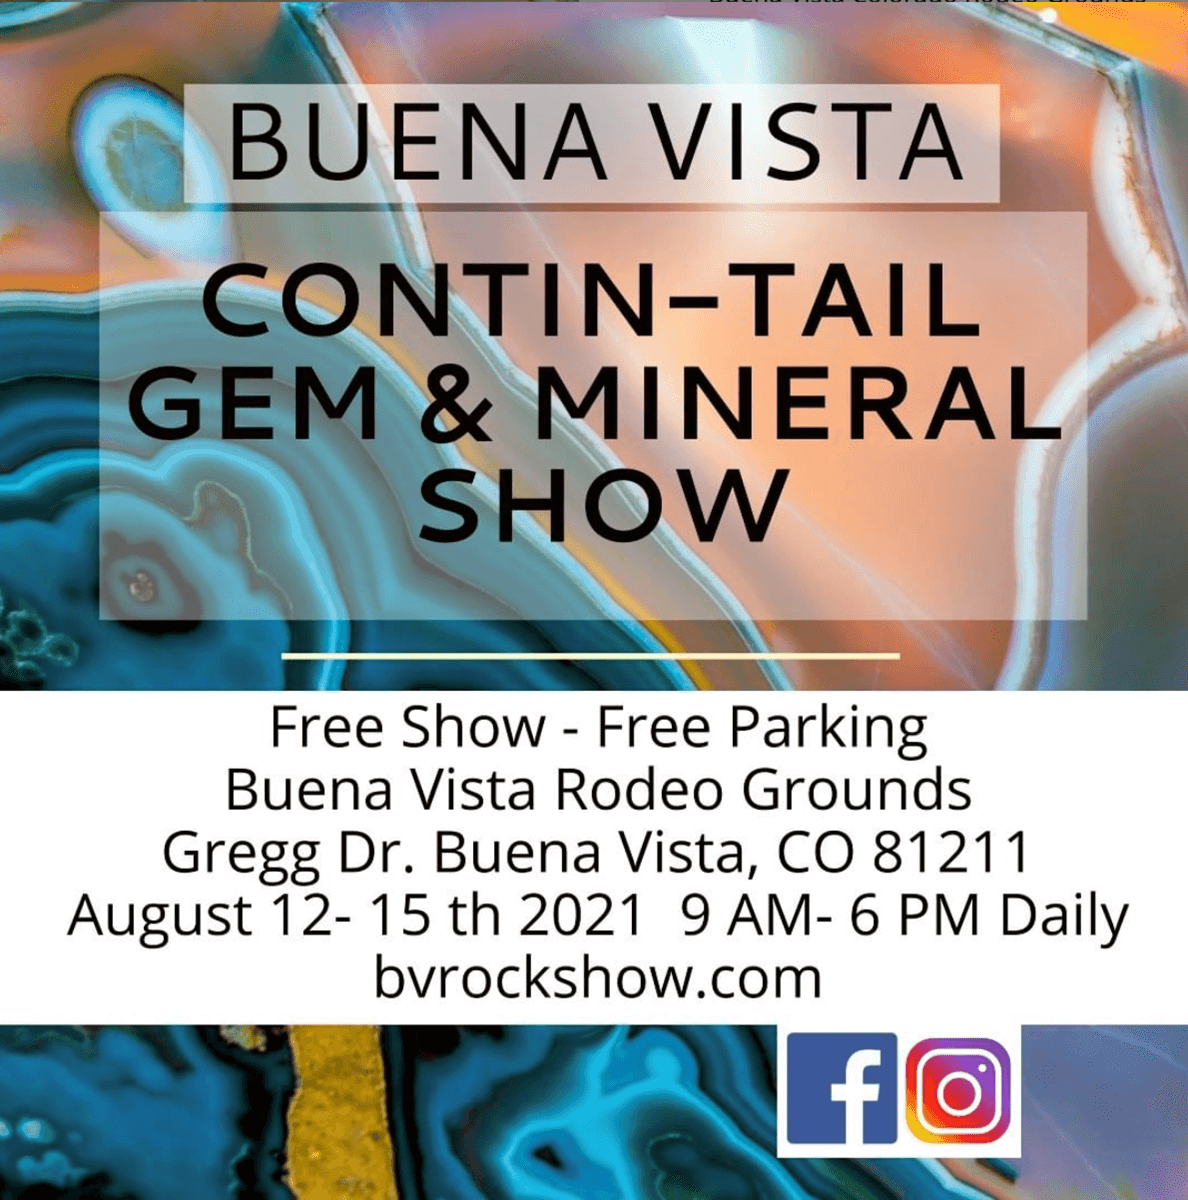 Buena Vista Contin-Tail Show, August 12-15, Largest Outdoor Mineral and Fossil Show in Colorado